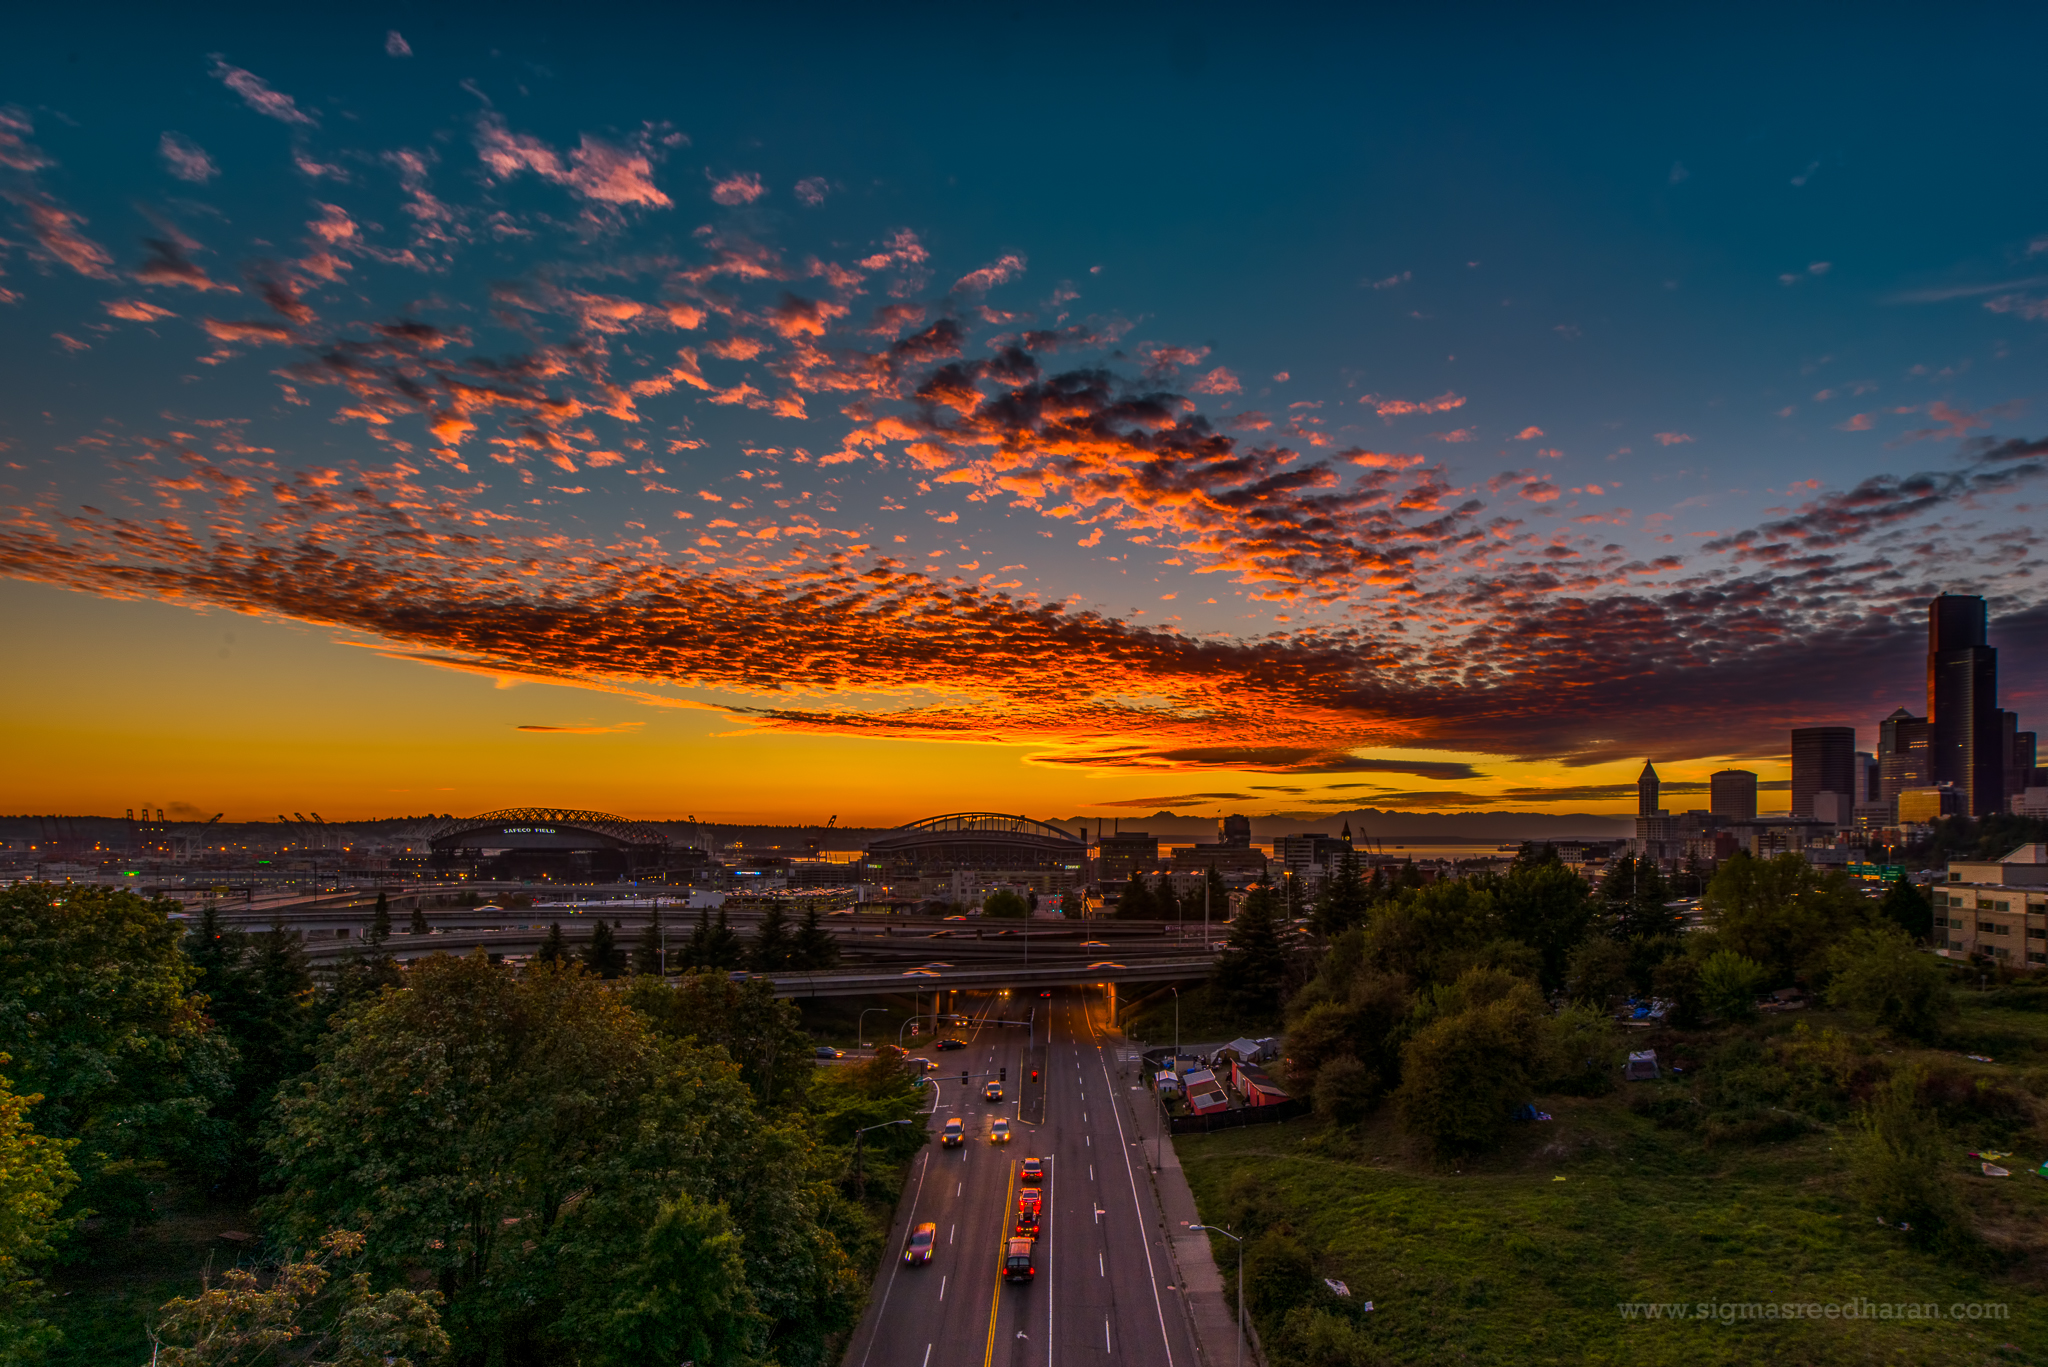 Seattle PhotoSpots By Sigma Sreedharan Exposure - Long exposure photographs capture entire day sunrise sunset